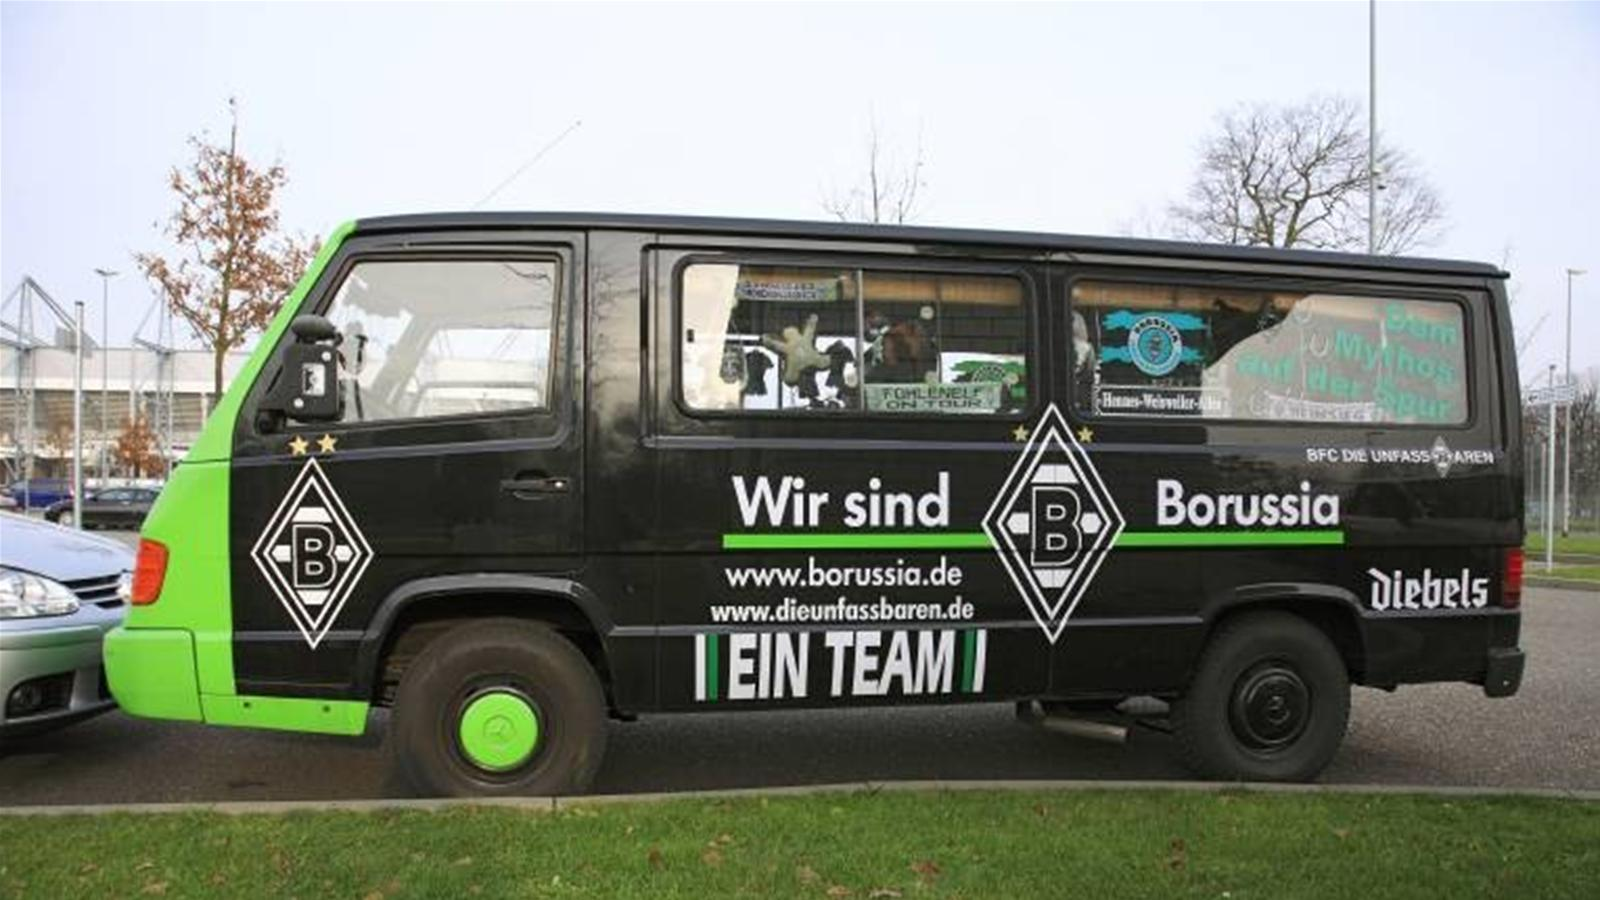 Hooligans attack fan bus - Bundesliga 2011-2012